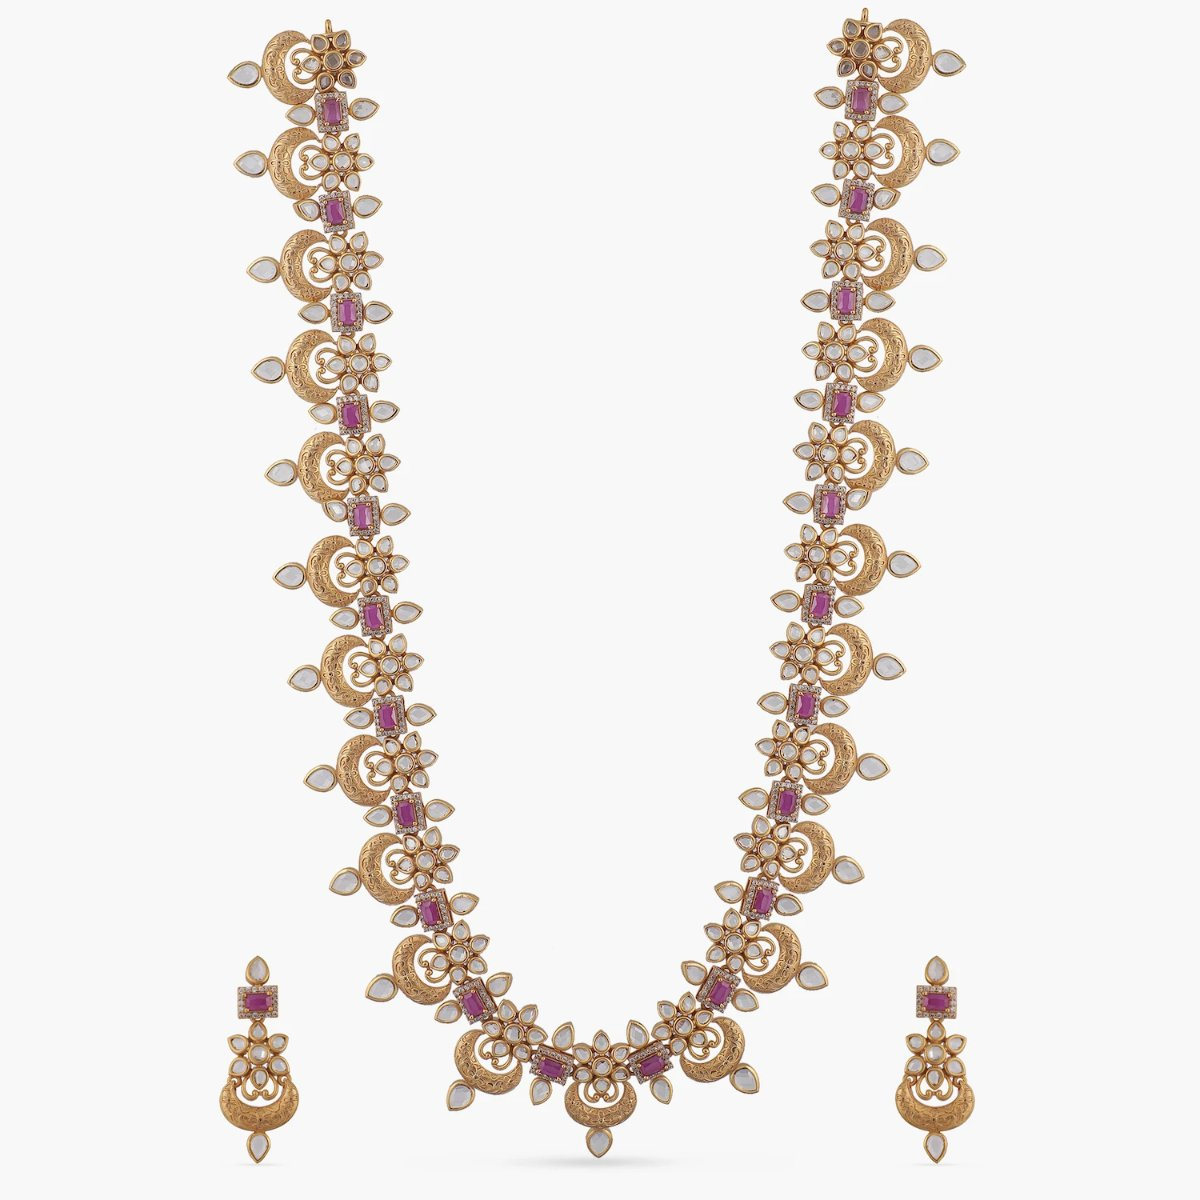 Maira Antique Long Necklace Set